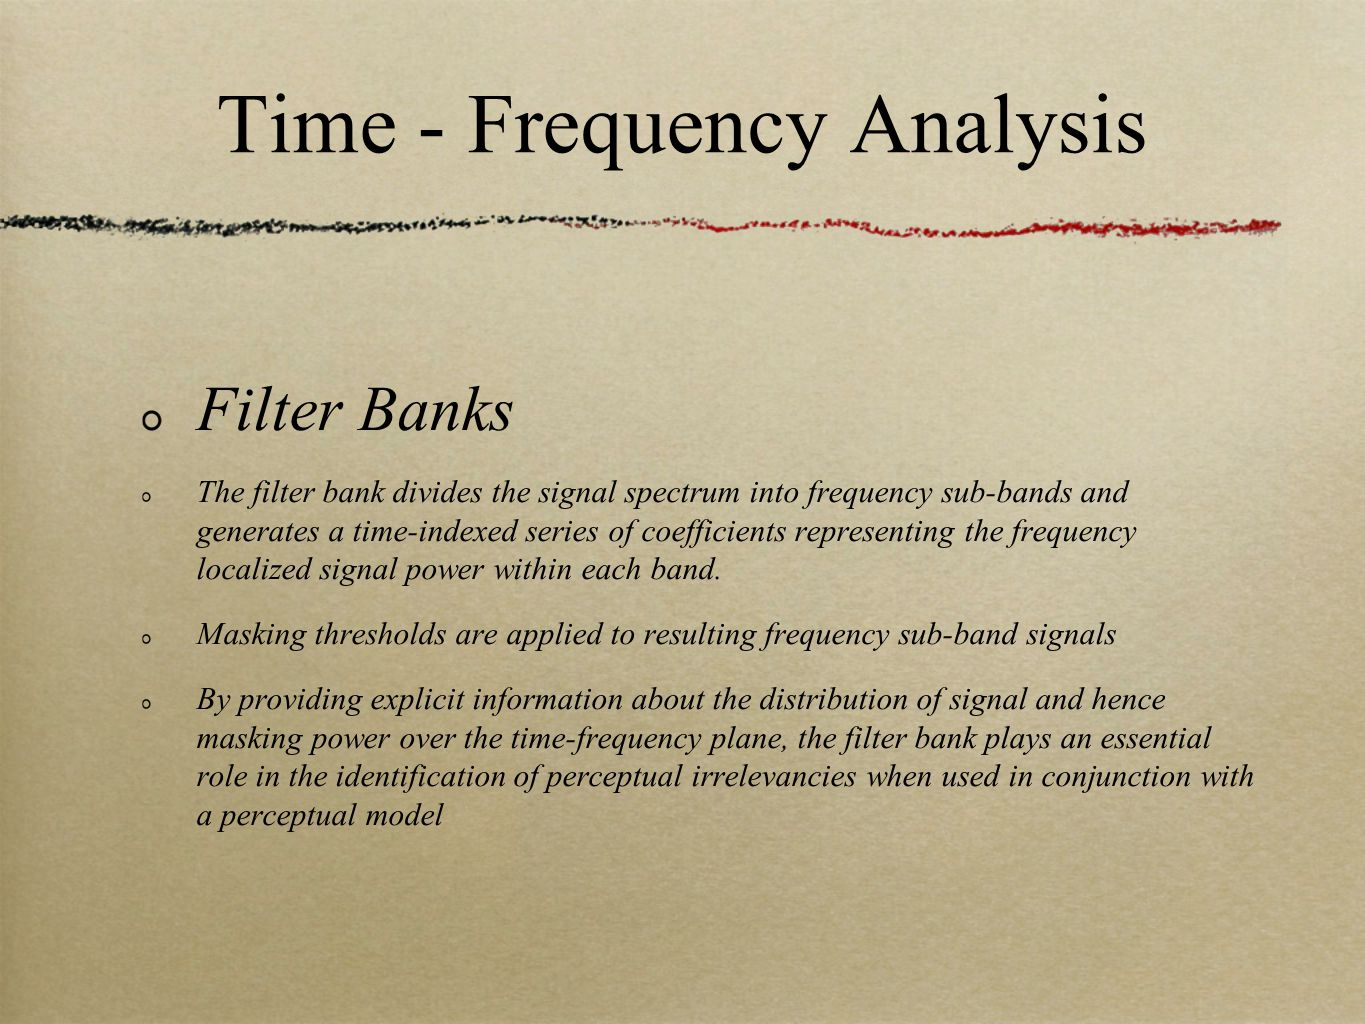 Time - Frequency Analysis Filter Banks The filter bank divides the signal spectrum into frequency sub-bands and generates a time-indexed series of coefficients representing the frequency localized signal power within each band.